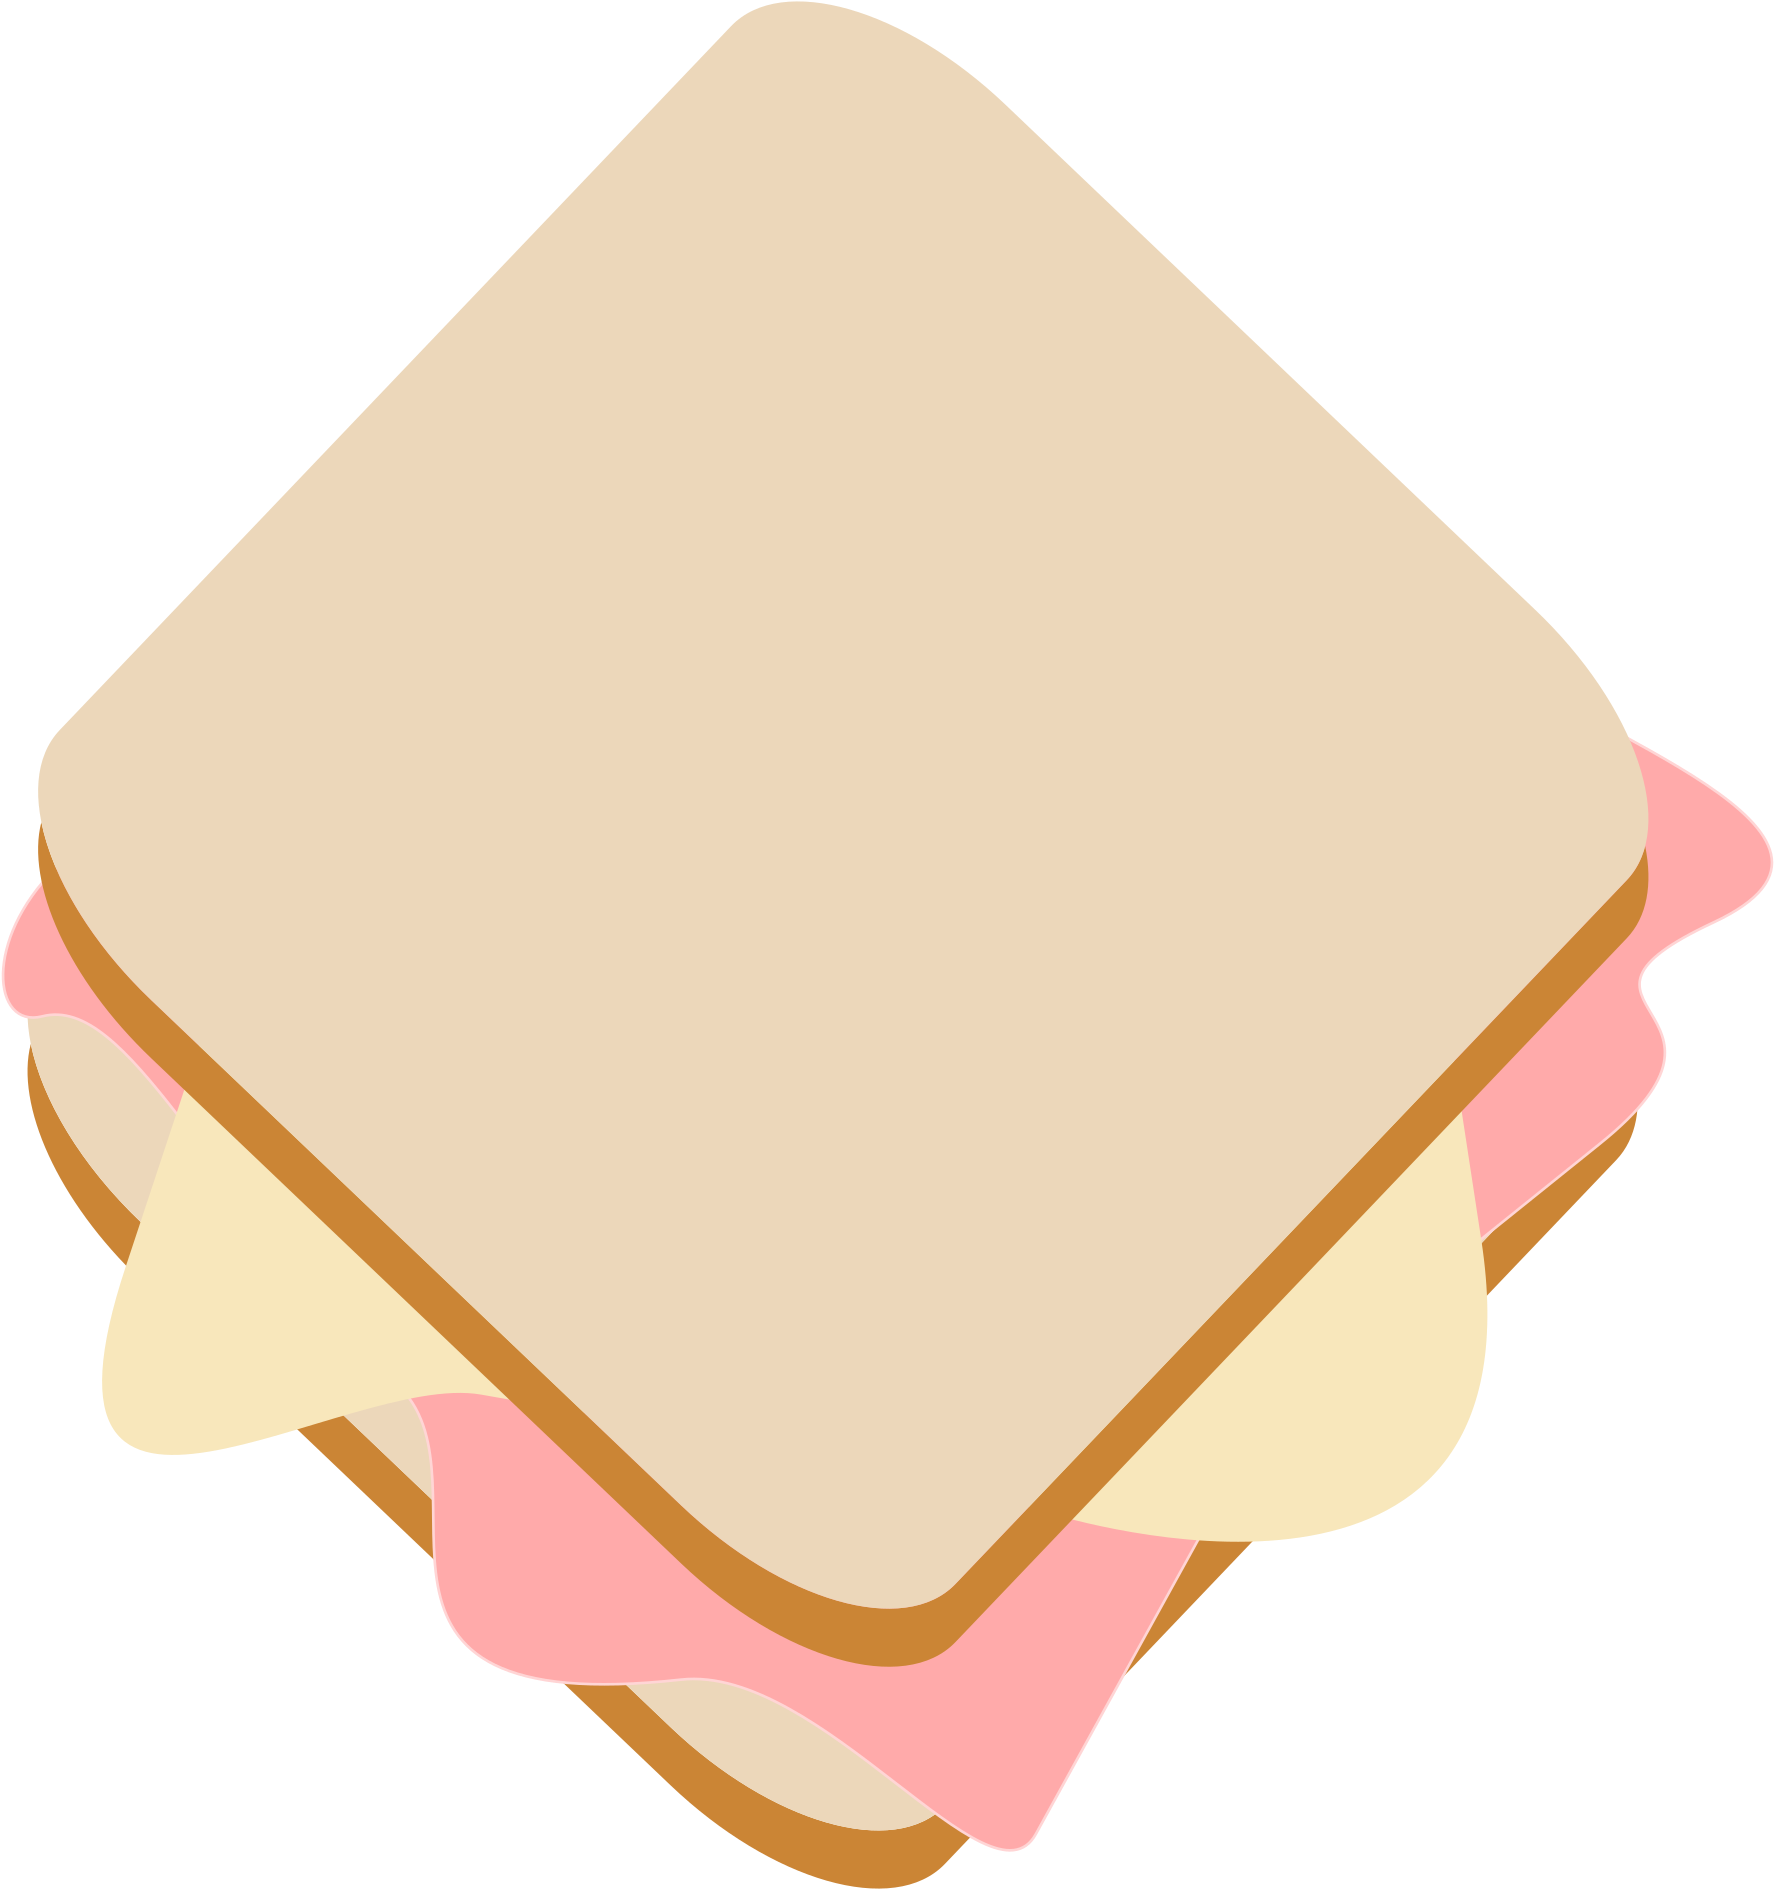 Ham And Cheese Clip Art - Png Download - Full Size Clipart ...